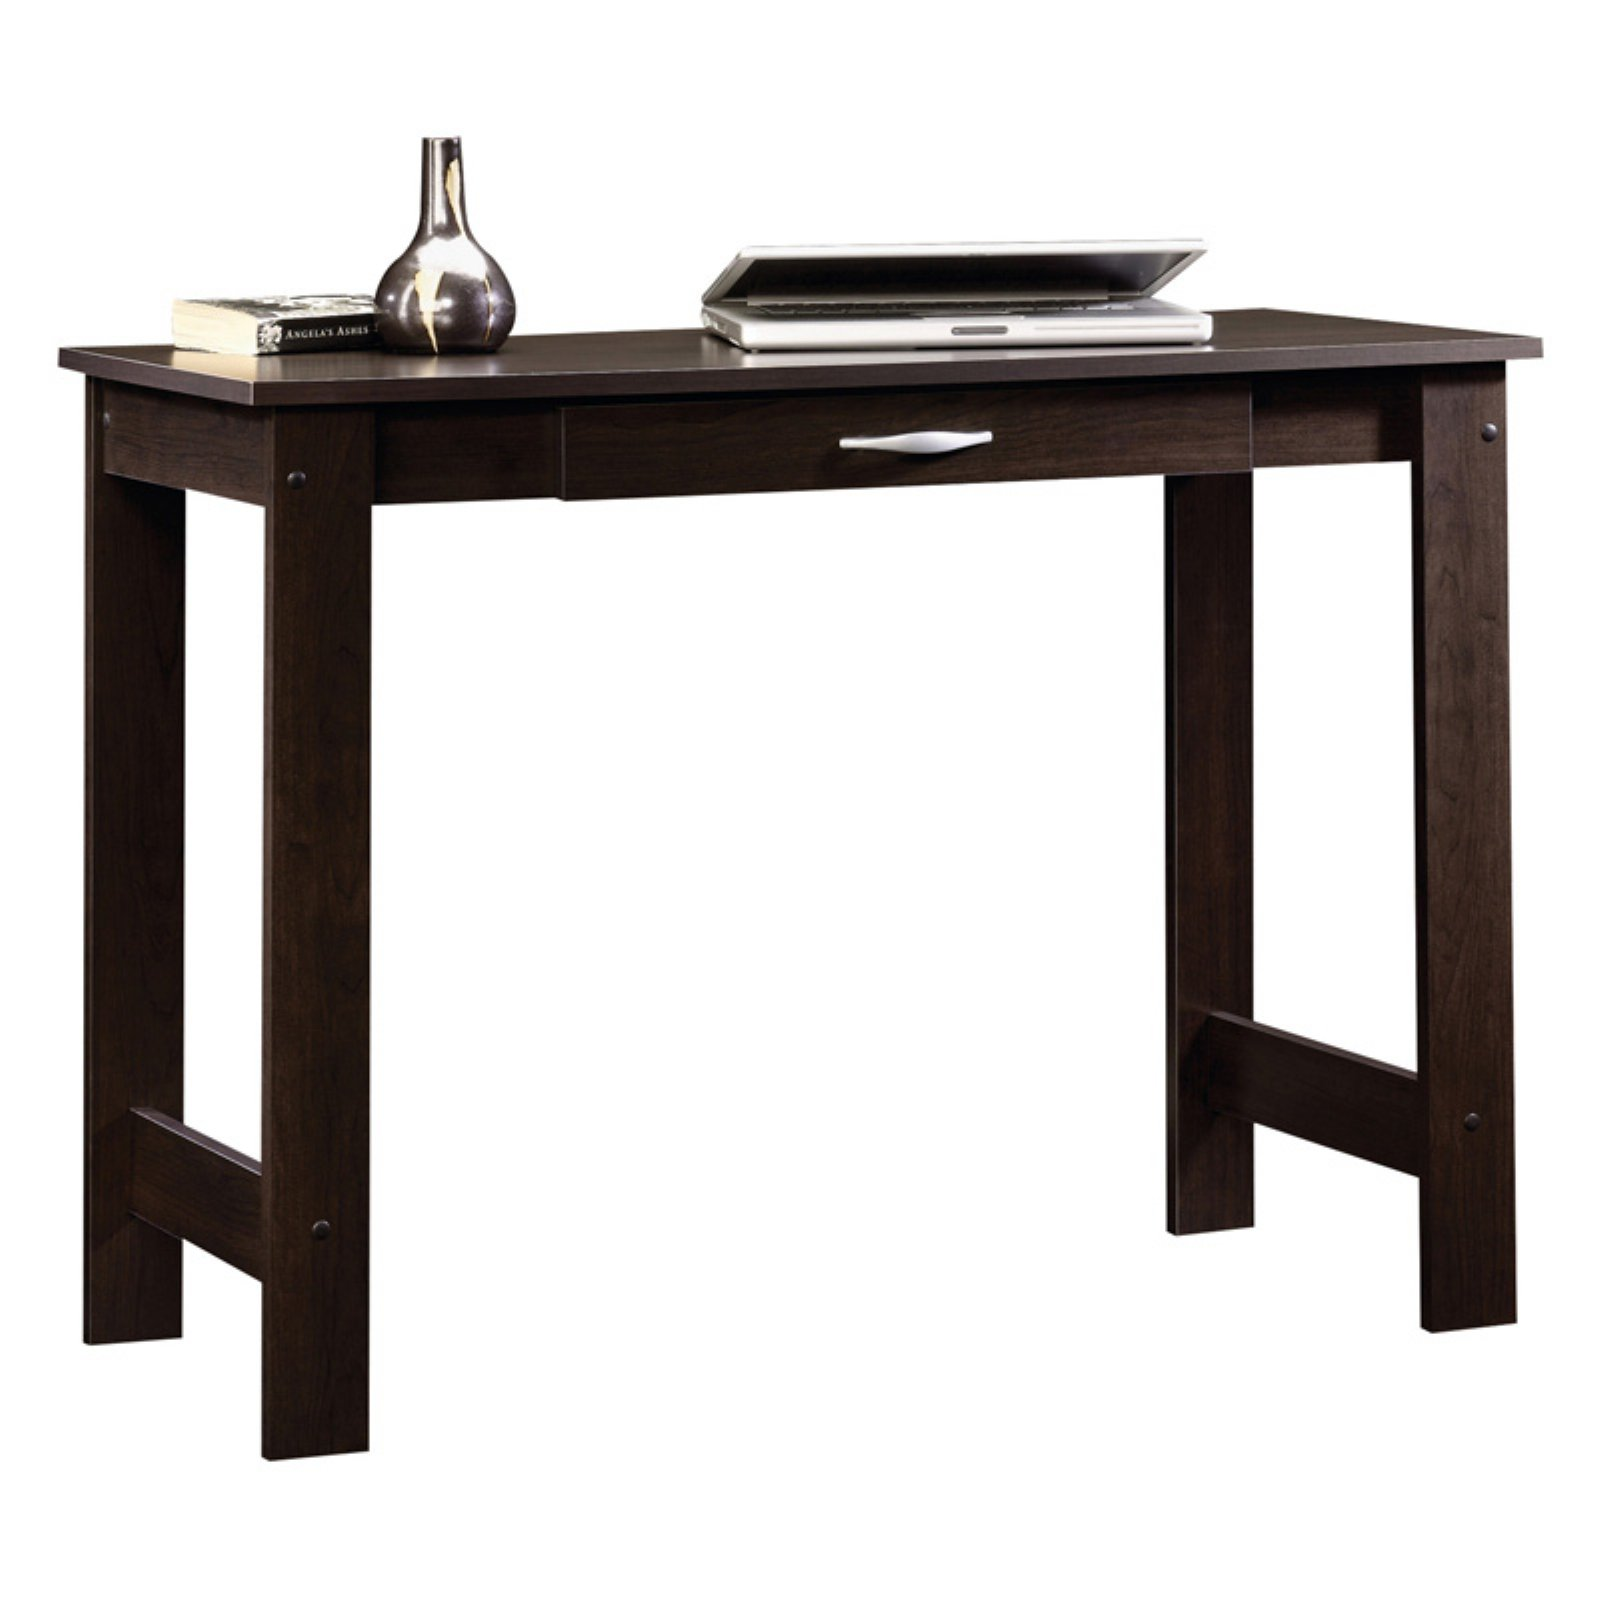 Sauder Beginnings Writing Table - Cinnamon Cherry - 39.2 in.